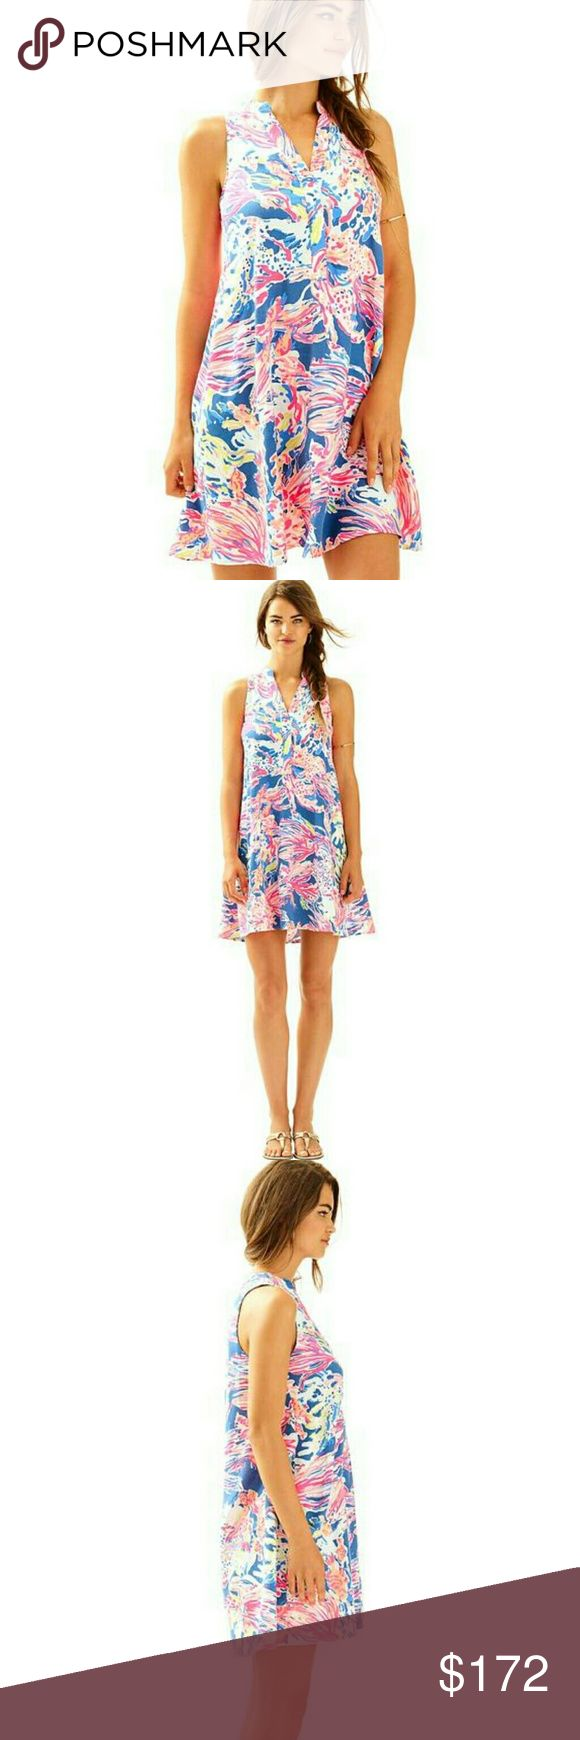 """NWT, Lilly Pulitzer Anne Dress in Indigo Enjoy the salty sea breeze in the printed Anne Dress. This trapeze dress has a front placket detail, and is great for a day spent enjoying time with friends outdoors.  Trapeze Dress With Front Placket Detail. 19"""" From Natural Waist To Hem. Textured Rayon - Print (100% Rayon). Dry Clean Only. Imported. Print is Sunken Treasure. Lilly Pulitzer Dresses"""